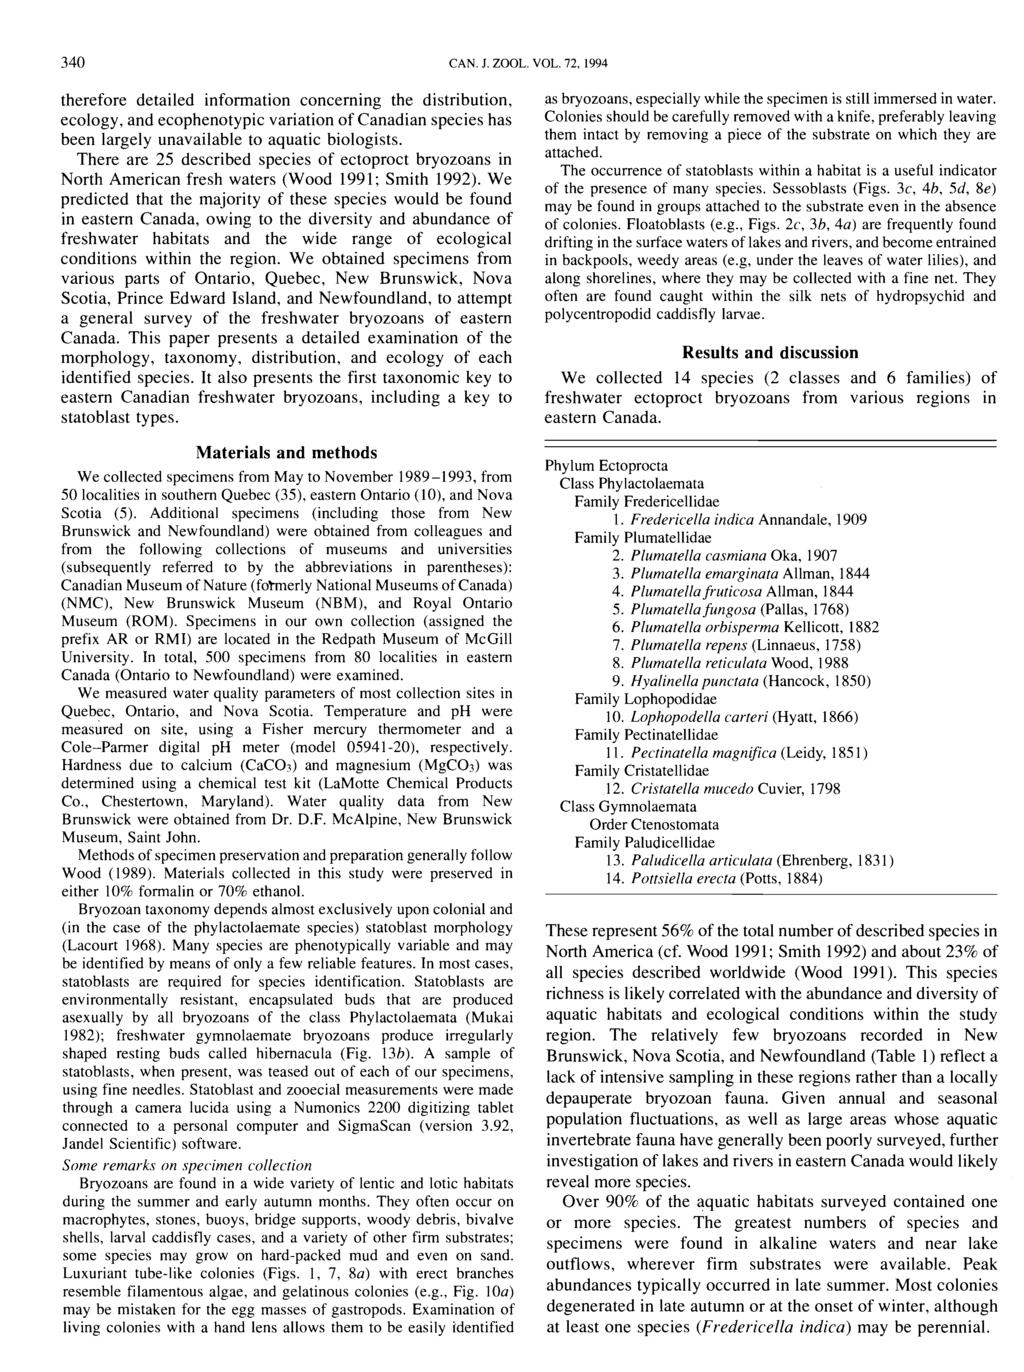 340 CAN. J. ZOOL. VOL. 72, 1994 therefore detailed information concerning the distribution, ecology, and ecophenotypic variation of Canadian species has been largely unavailable to aquatic biologists.